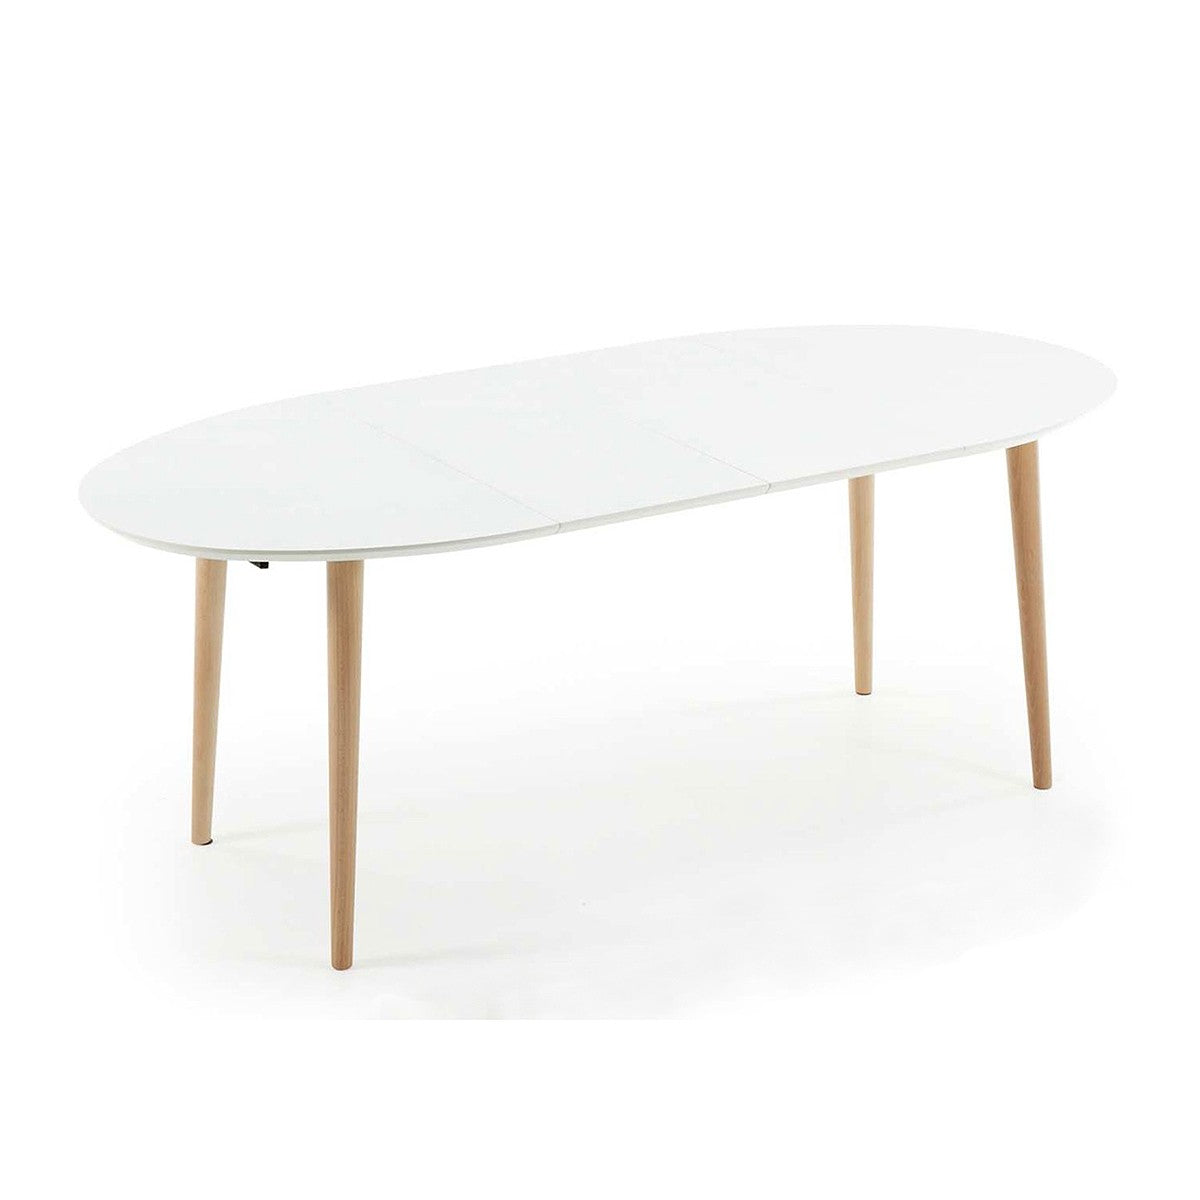 OAKLAND EXTENSION DINING TABLE